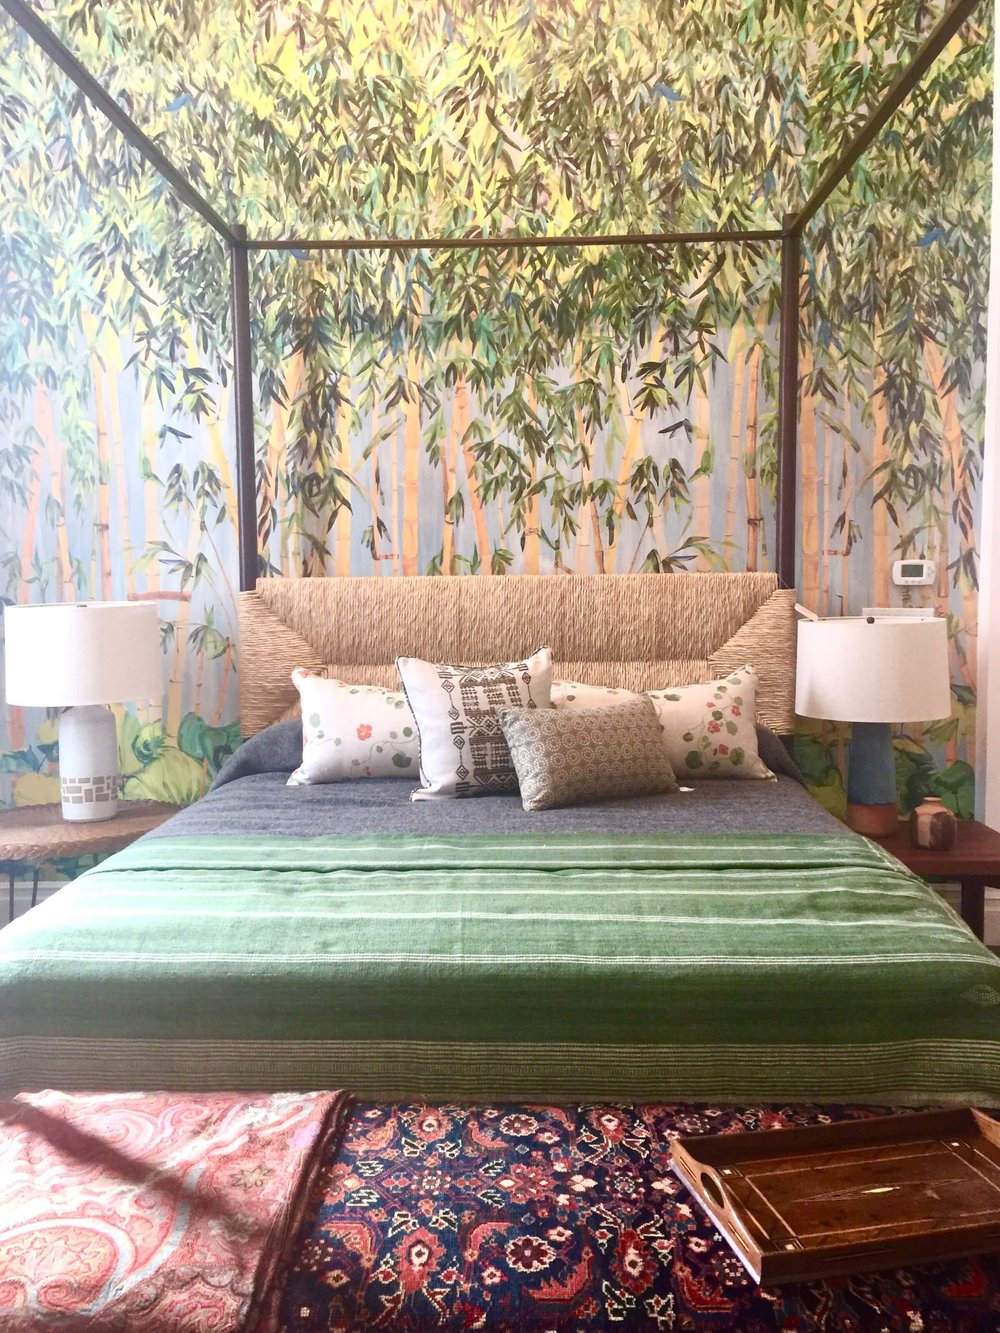 Four poster bed with rush headboard and bamboo patterned wall mural at Hollywood at Home, Los Angeles home furnishings shop #bedroom #fourposterbed